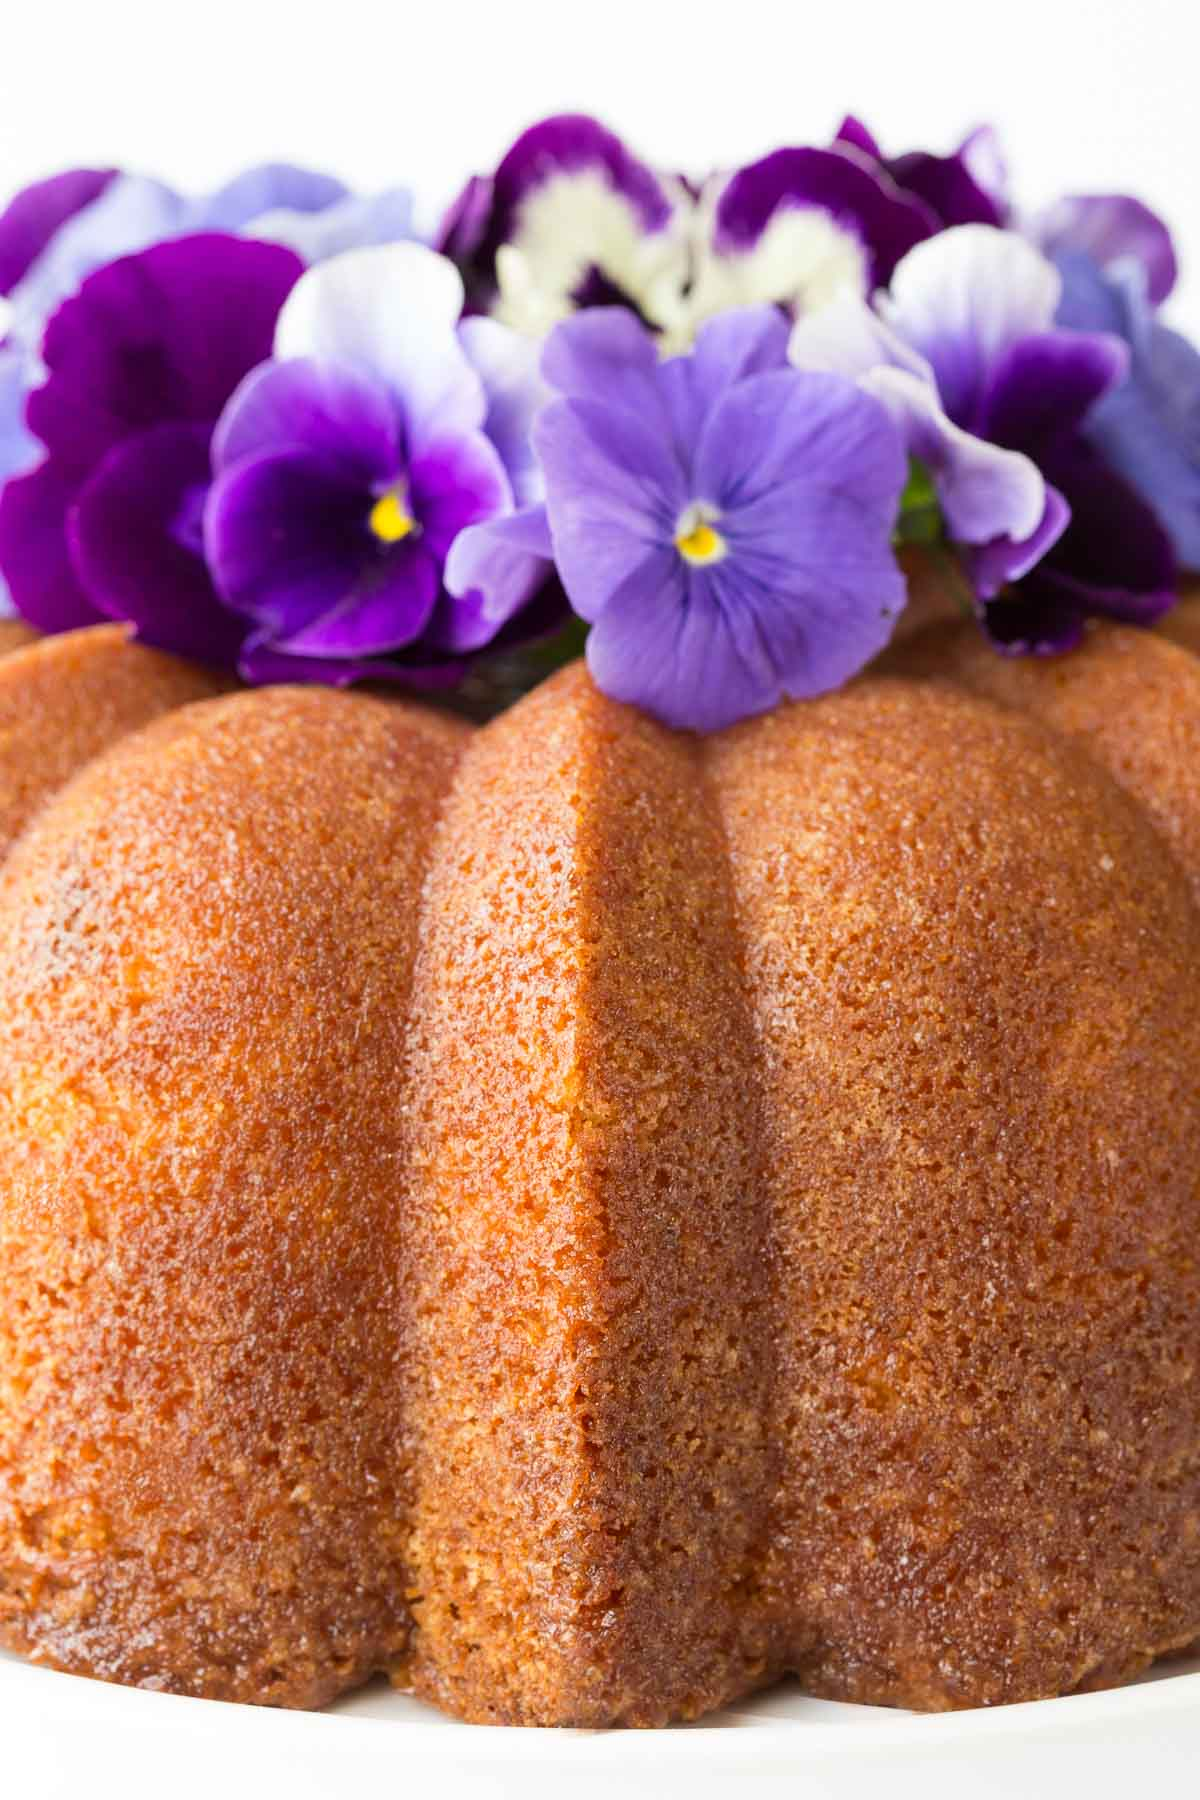 Closeup photo of the side of a Lemon Buttermilk Pound Cake with purple and white pansies on top as decoration.